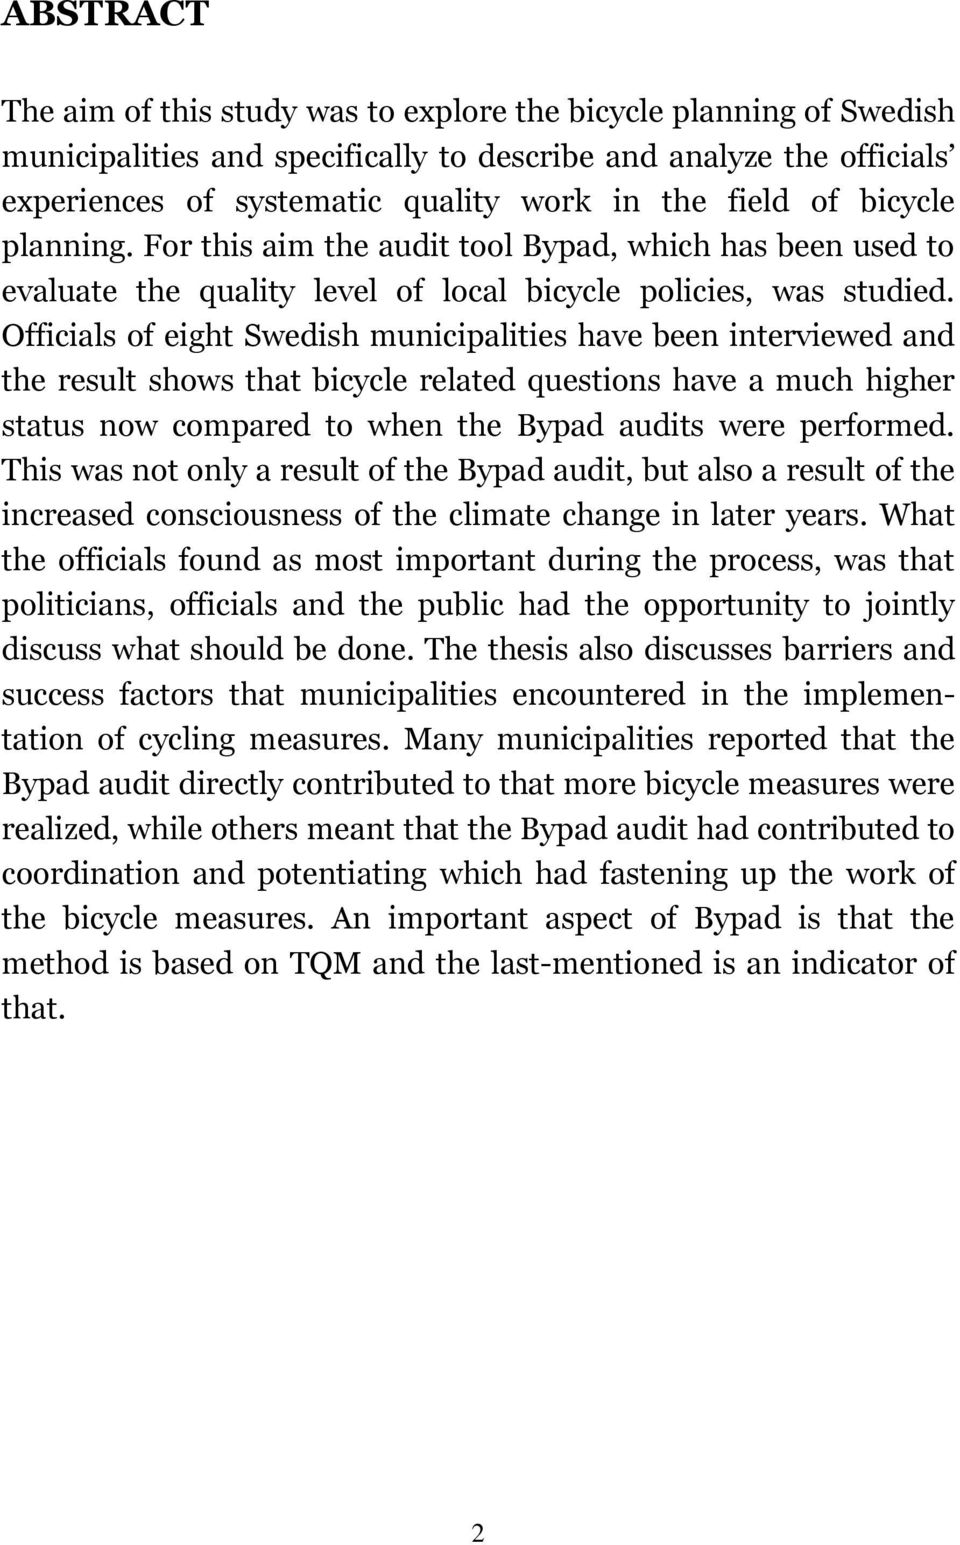 Officials of eight Swedish municipalities have been interviewed and the result shows that bicycle related questions have a much higher status now compared to when the Bypad audits were performed.